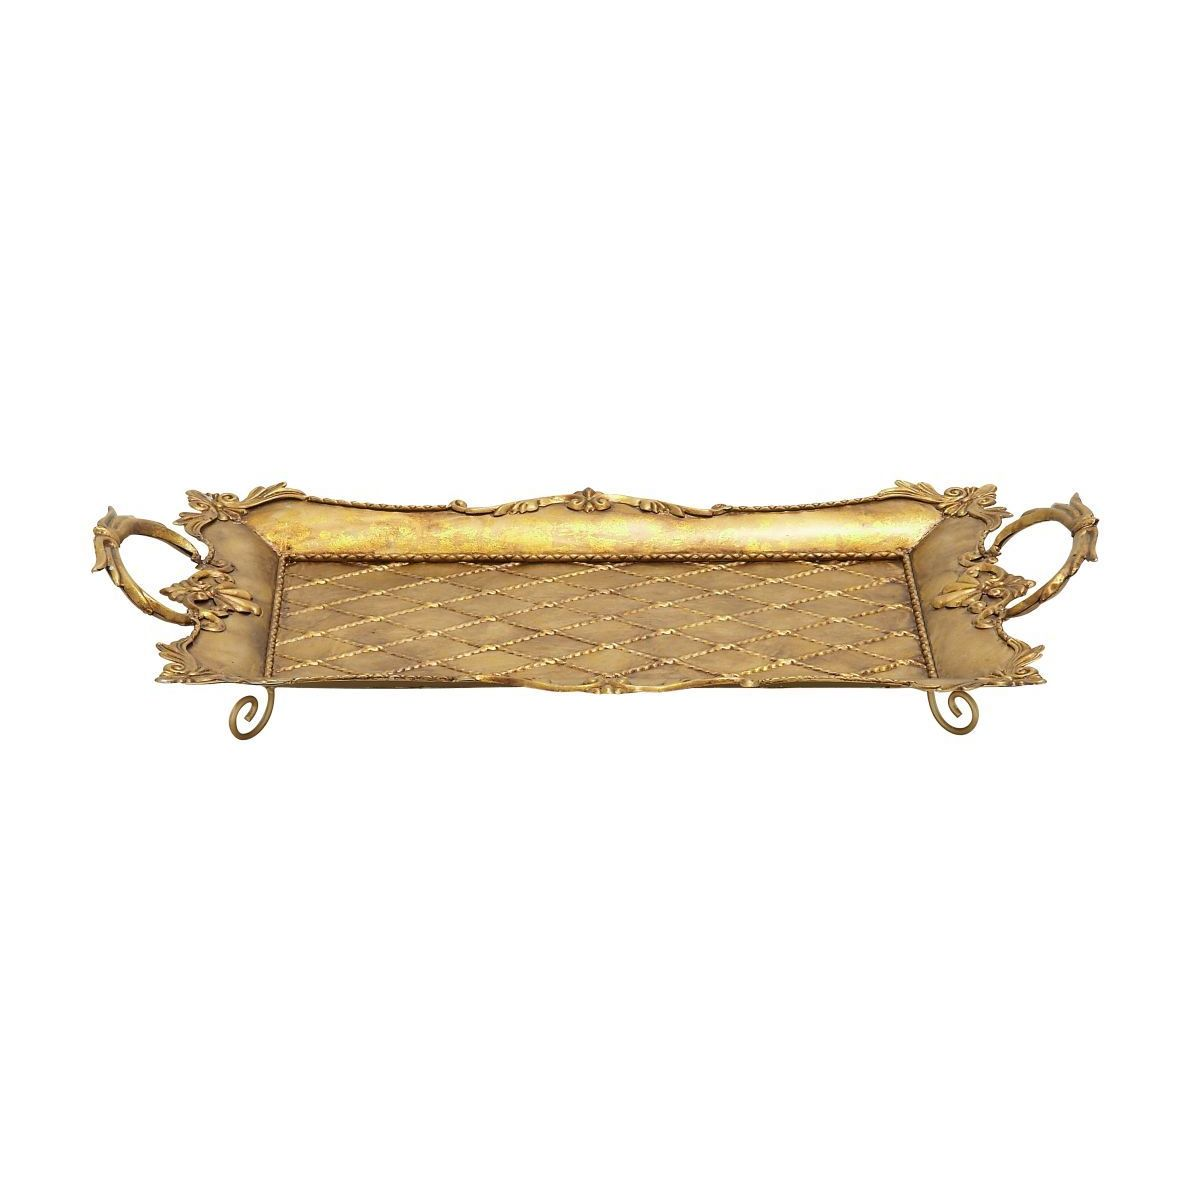 Gold Serving Tray Metal Gold Serving Tray